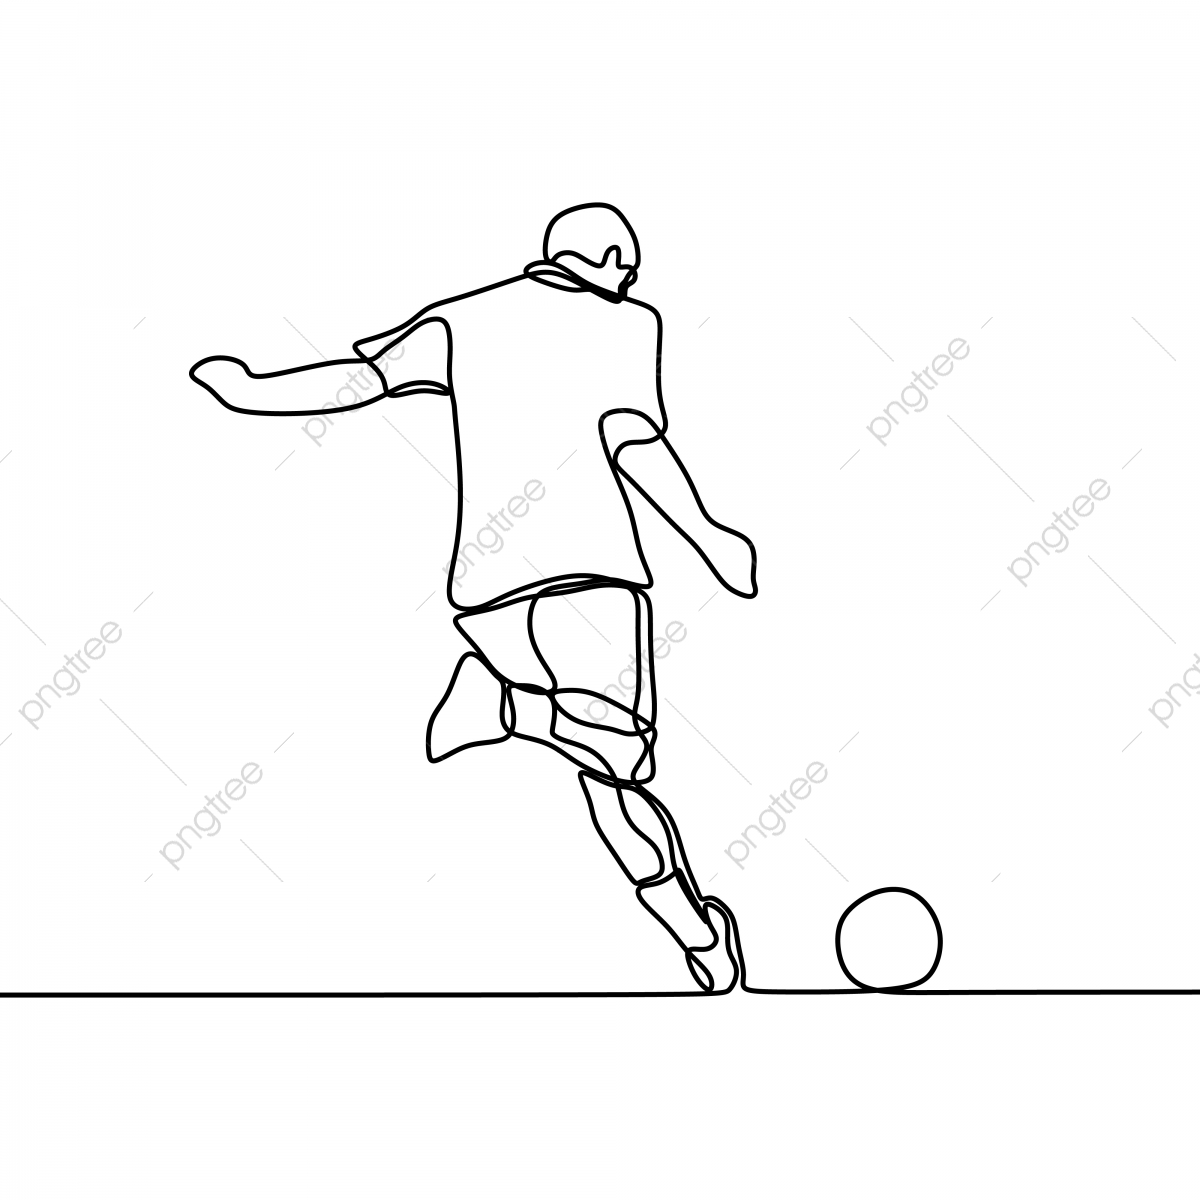 Football Player Kick A Ball Continuous Line Drawing Kick Defense Foot Png And Vector With Transparent Background For Free Download